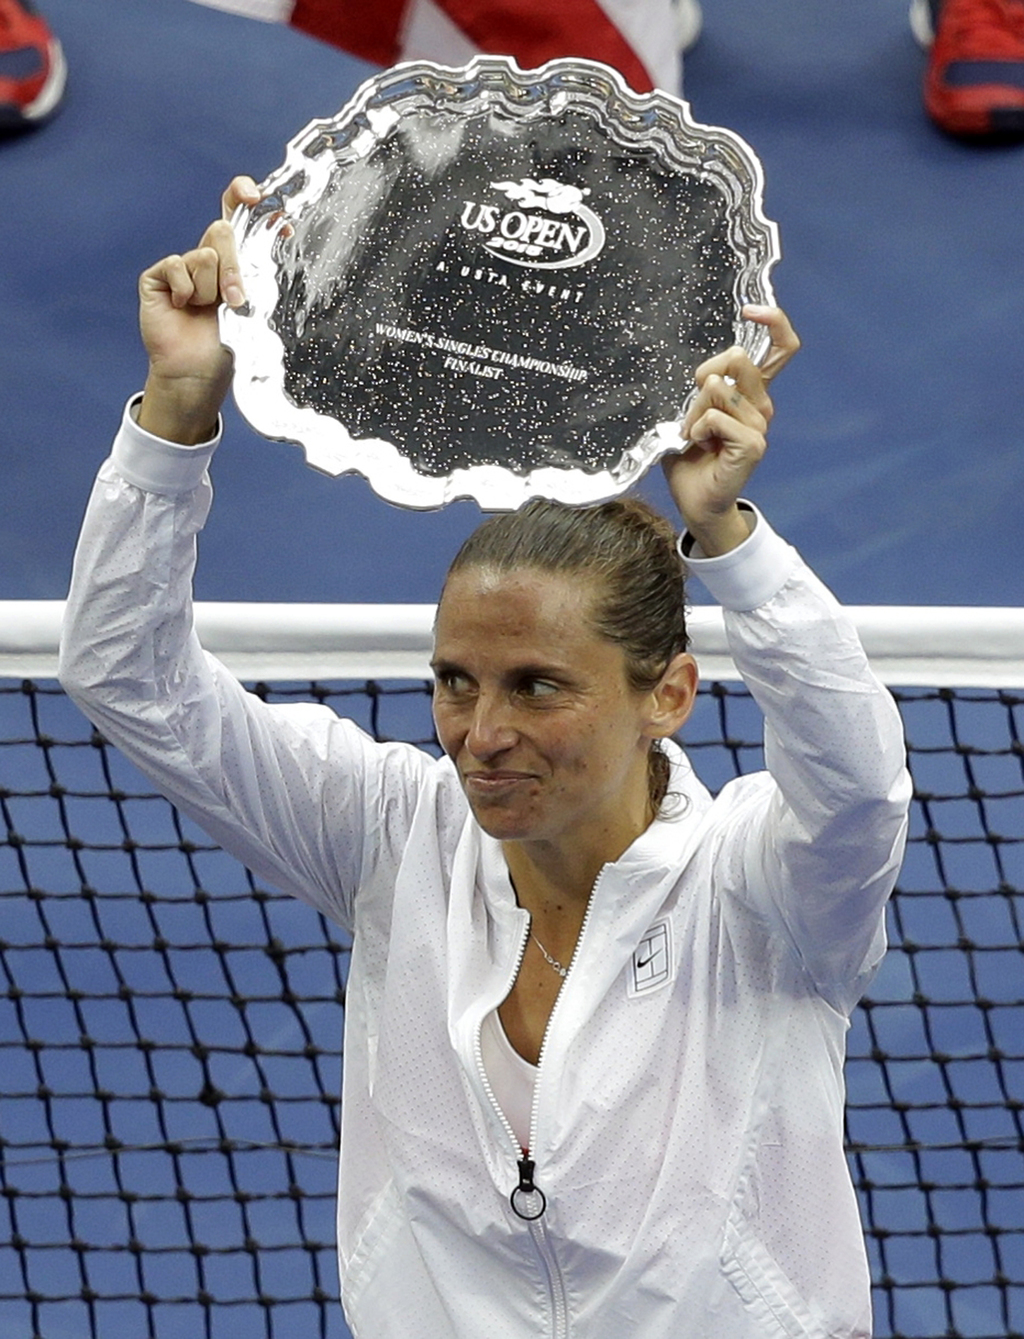 FILE - In this  Saturday, Sept. 12, 2015 file photo Roberta Vinci, of Italy, holds the finalist's trophy after she was beaten by Flavia Pennetta, of I...